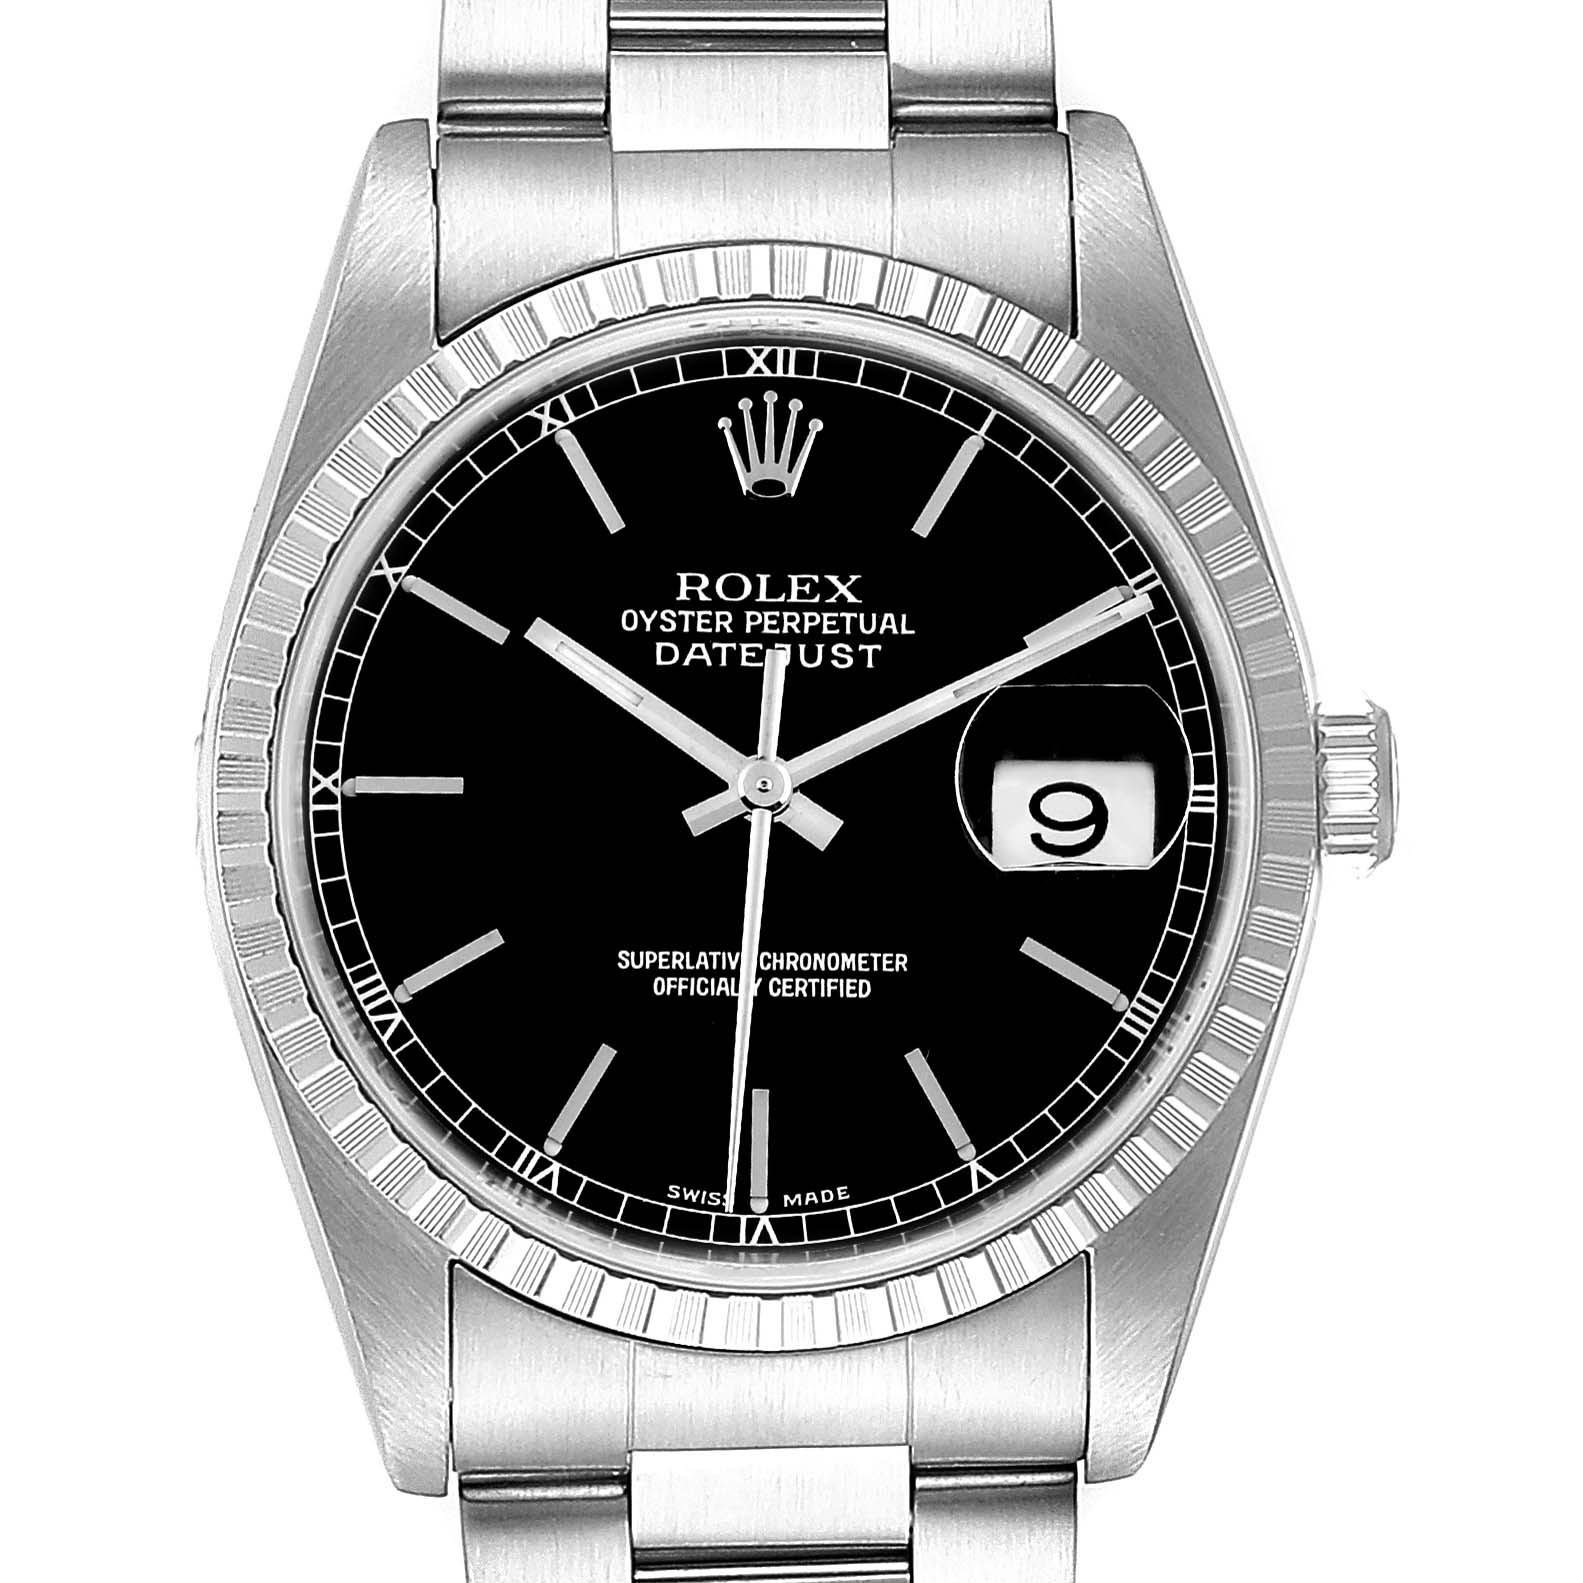 Rolex Datejust 36mm Black Dial Jubilee Bracelet Steel Mens Watch 16220